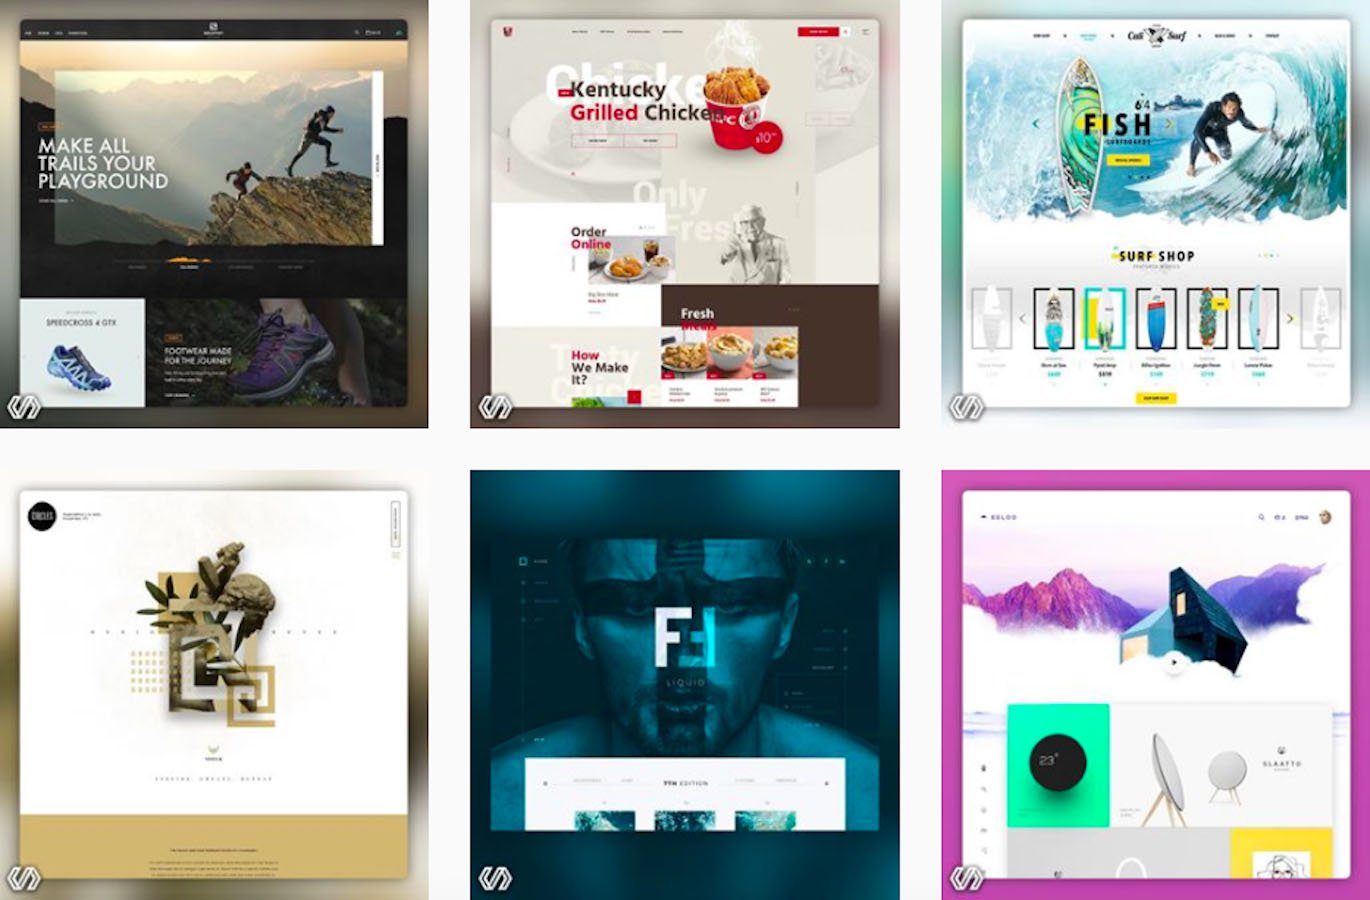 Web Design Inspiration: 110+ Accounts On Instagram and 10+ Best UX & Web Design Books in 2020 - dailywebdesign